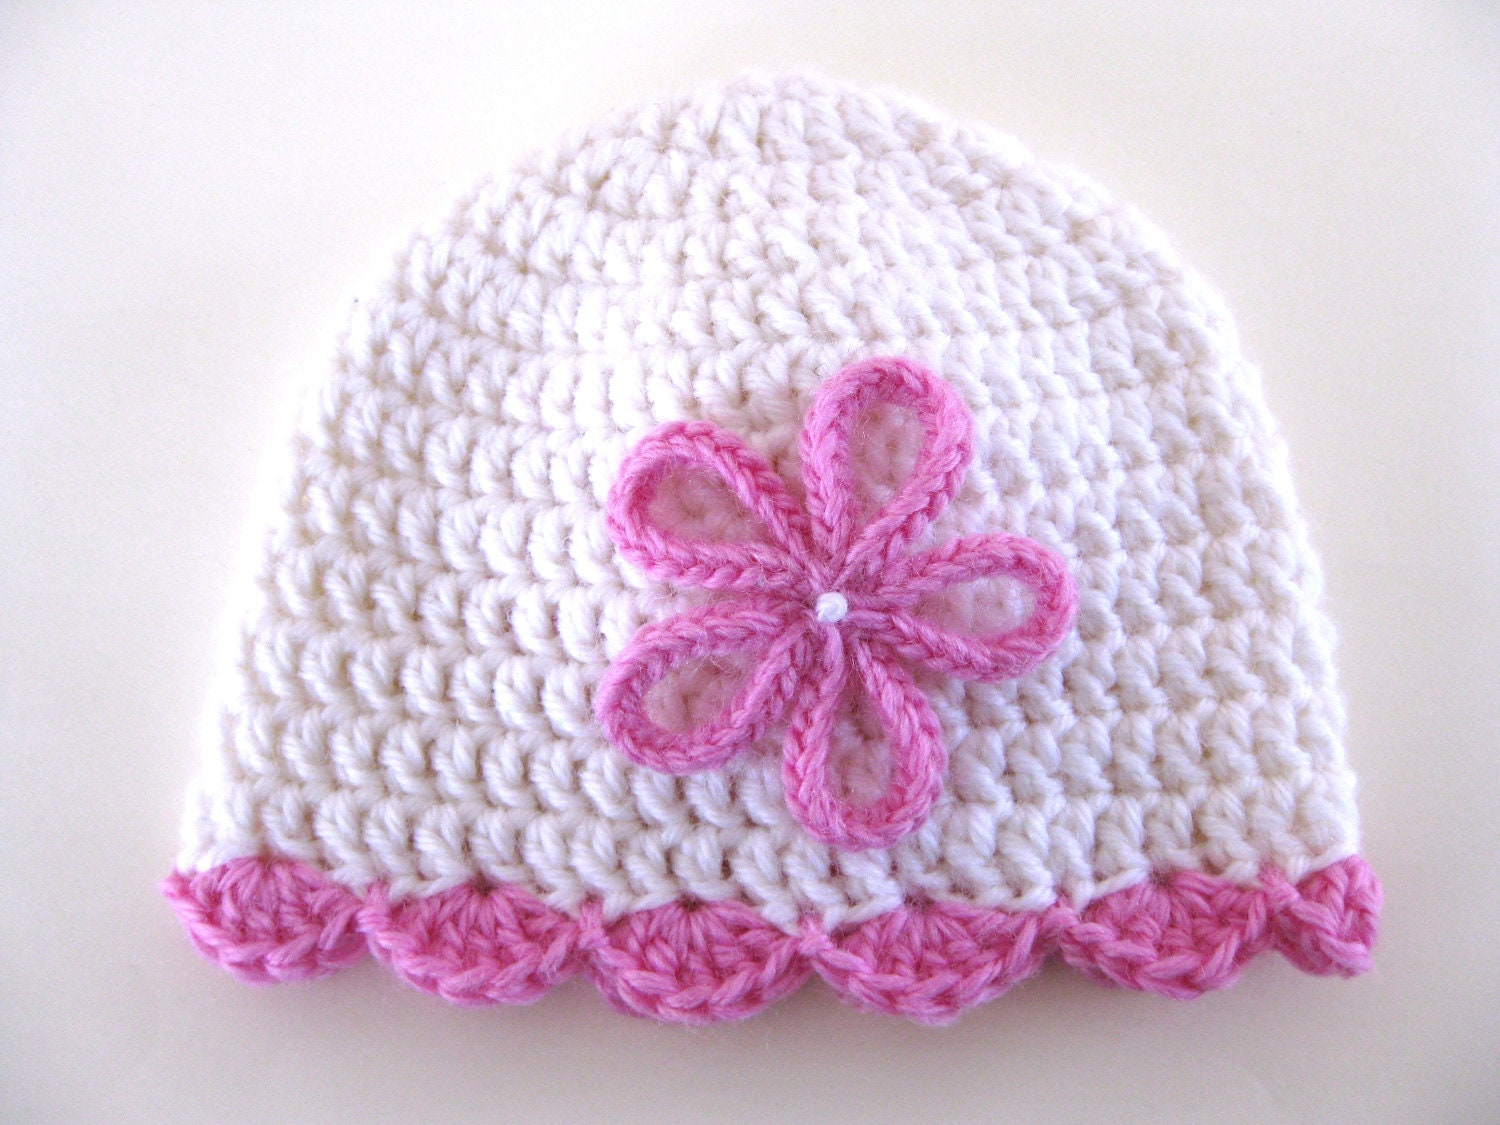 Crochet Hat Pattern For Premature Baby : Pattern preemie crochet hat shell edge by thewhitedaisydesigns